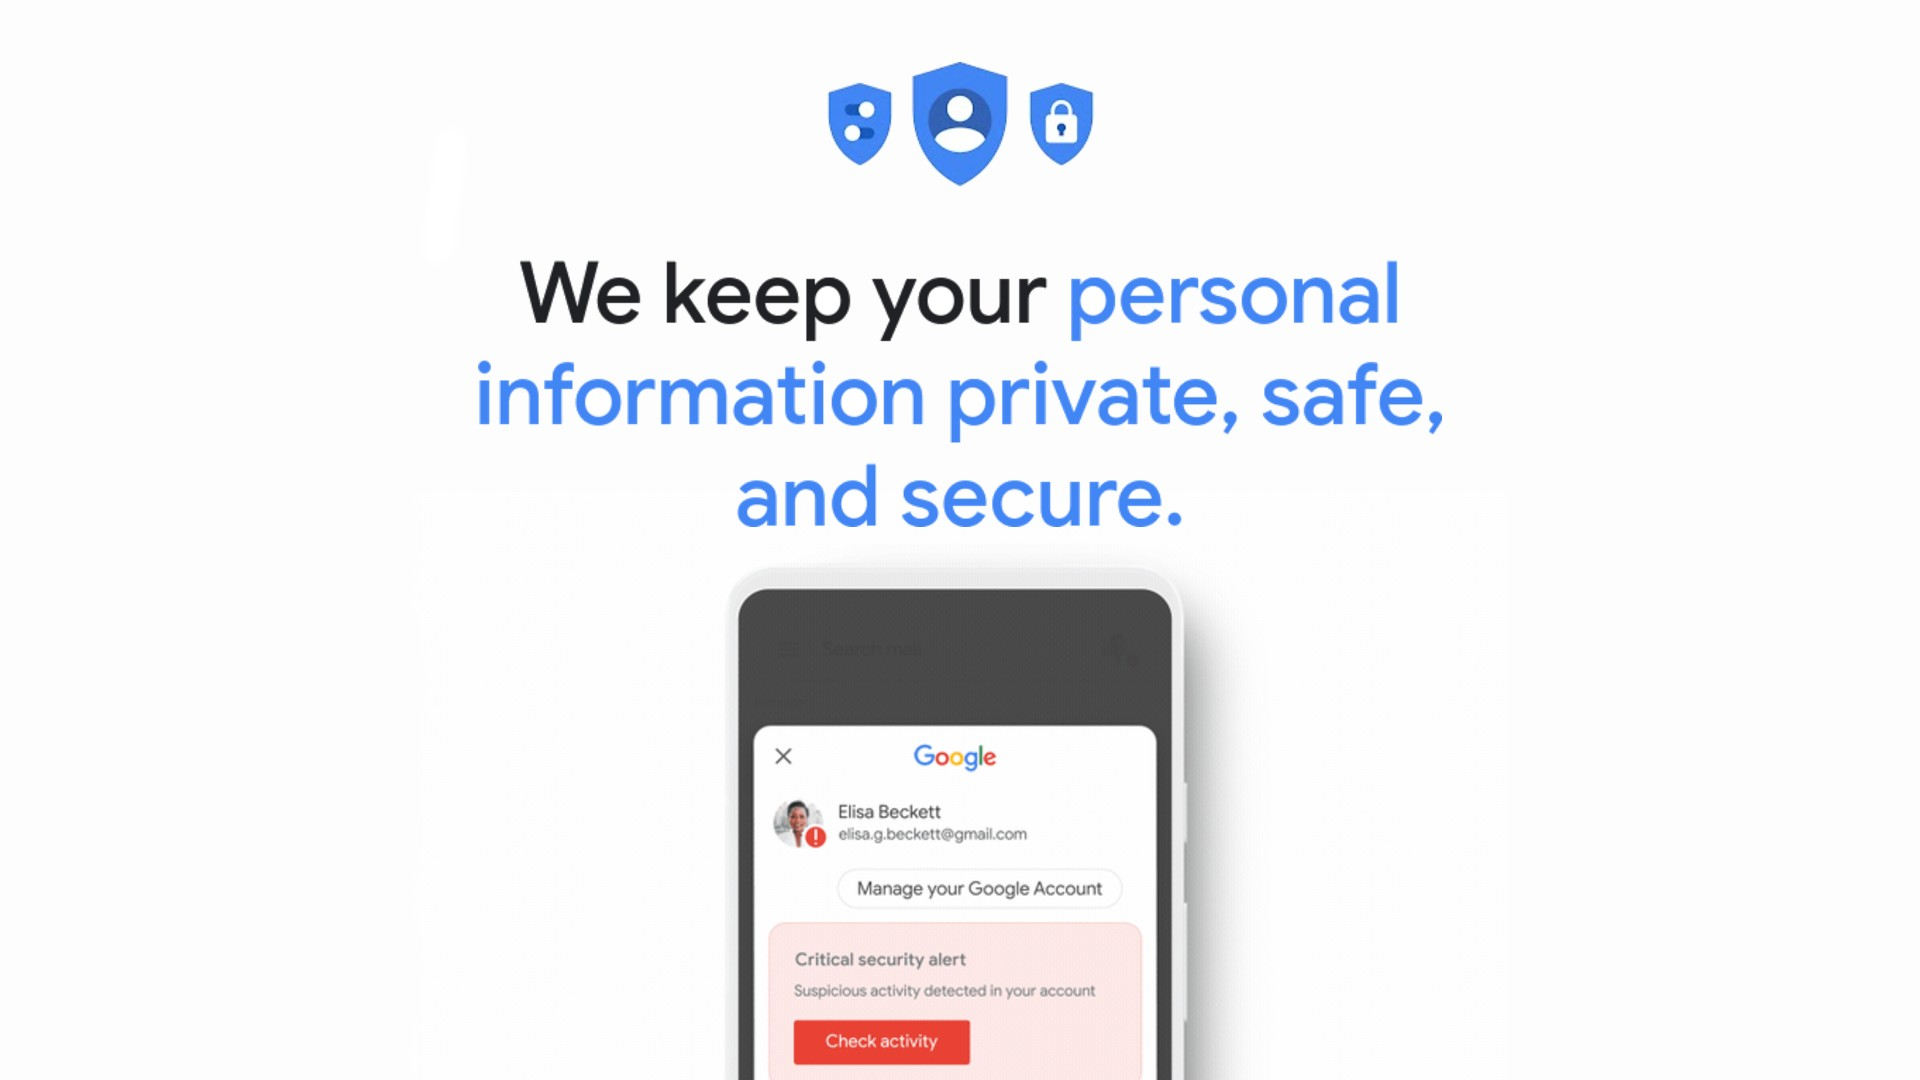 Google account security alerts find a new spoof-proof home and all you have to do is ask